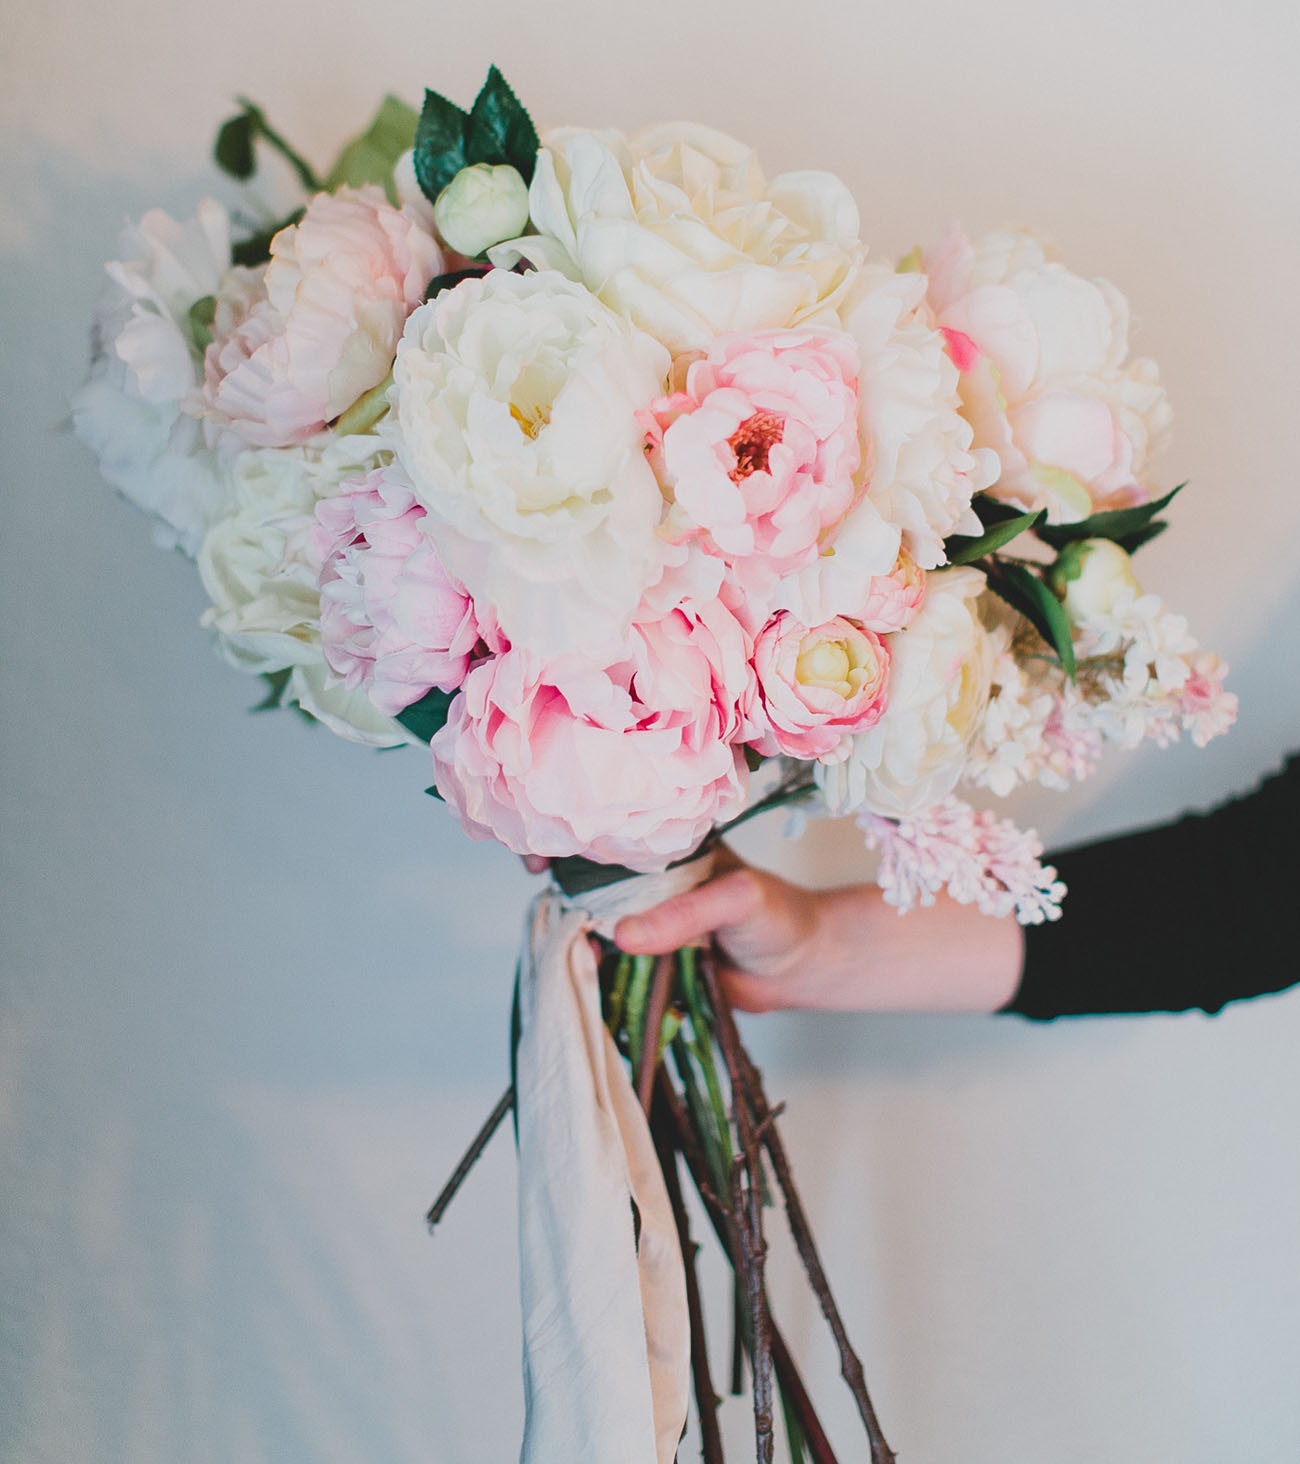 Best ideas about DIY Wedding Bouquet Silk Flowers . Save or Pin DIY Silk Flower Bouquet with Afloral Green Wedding Shoes Now.